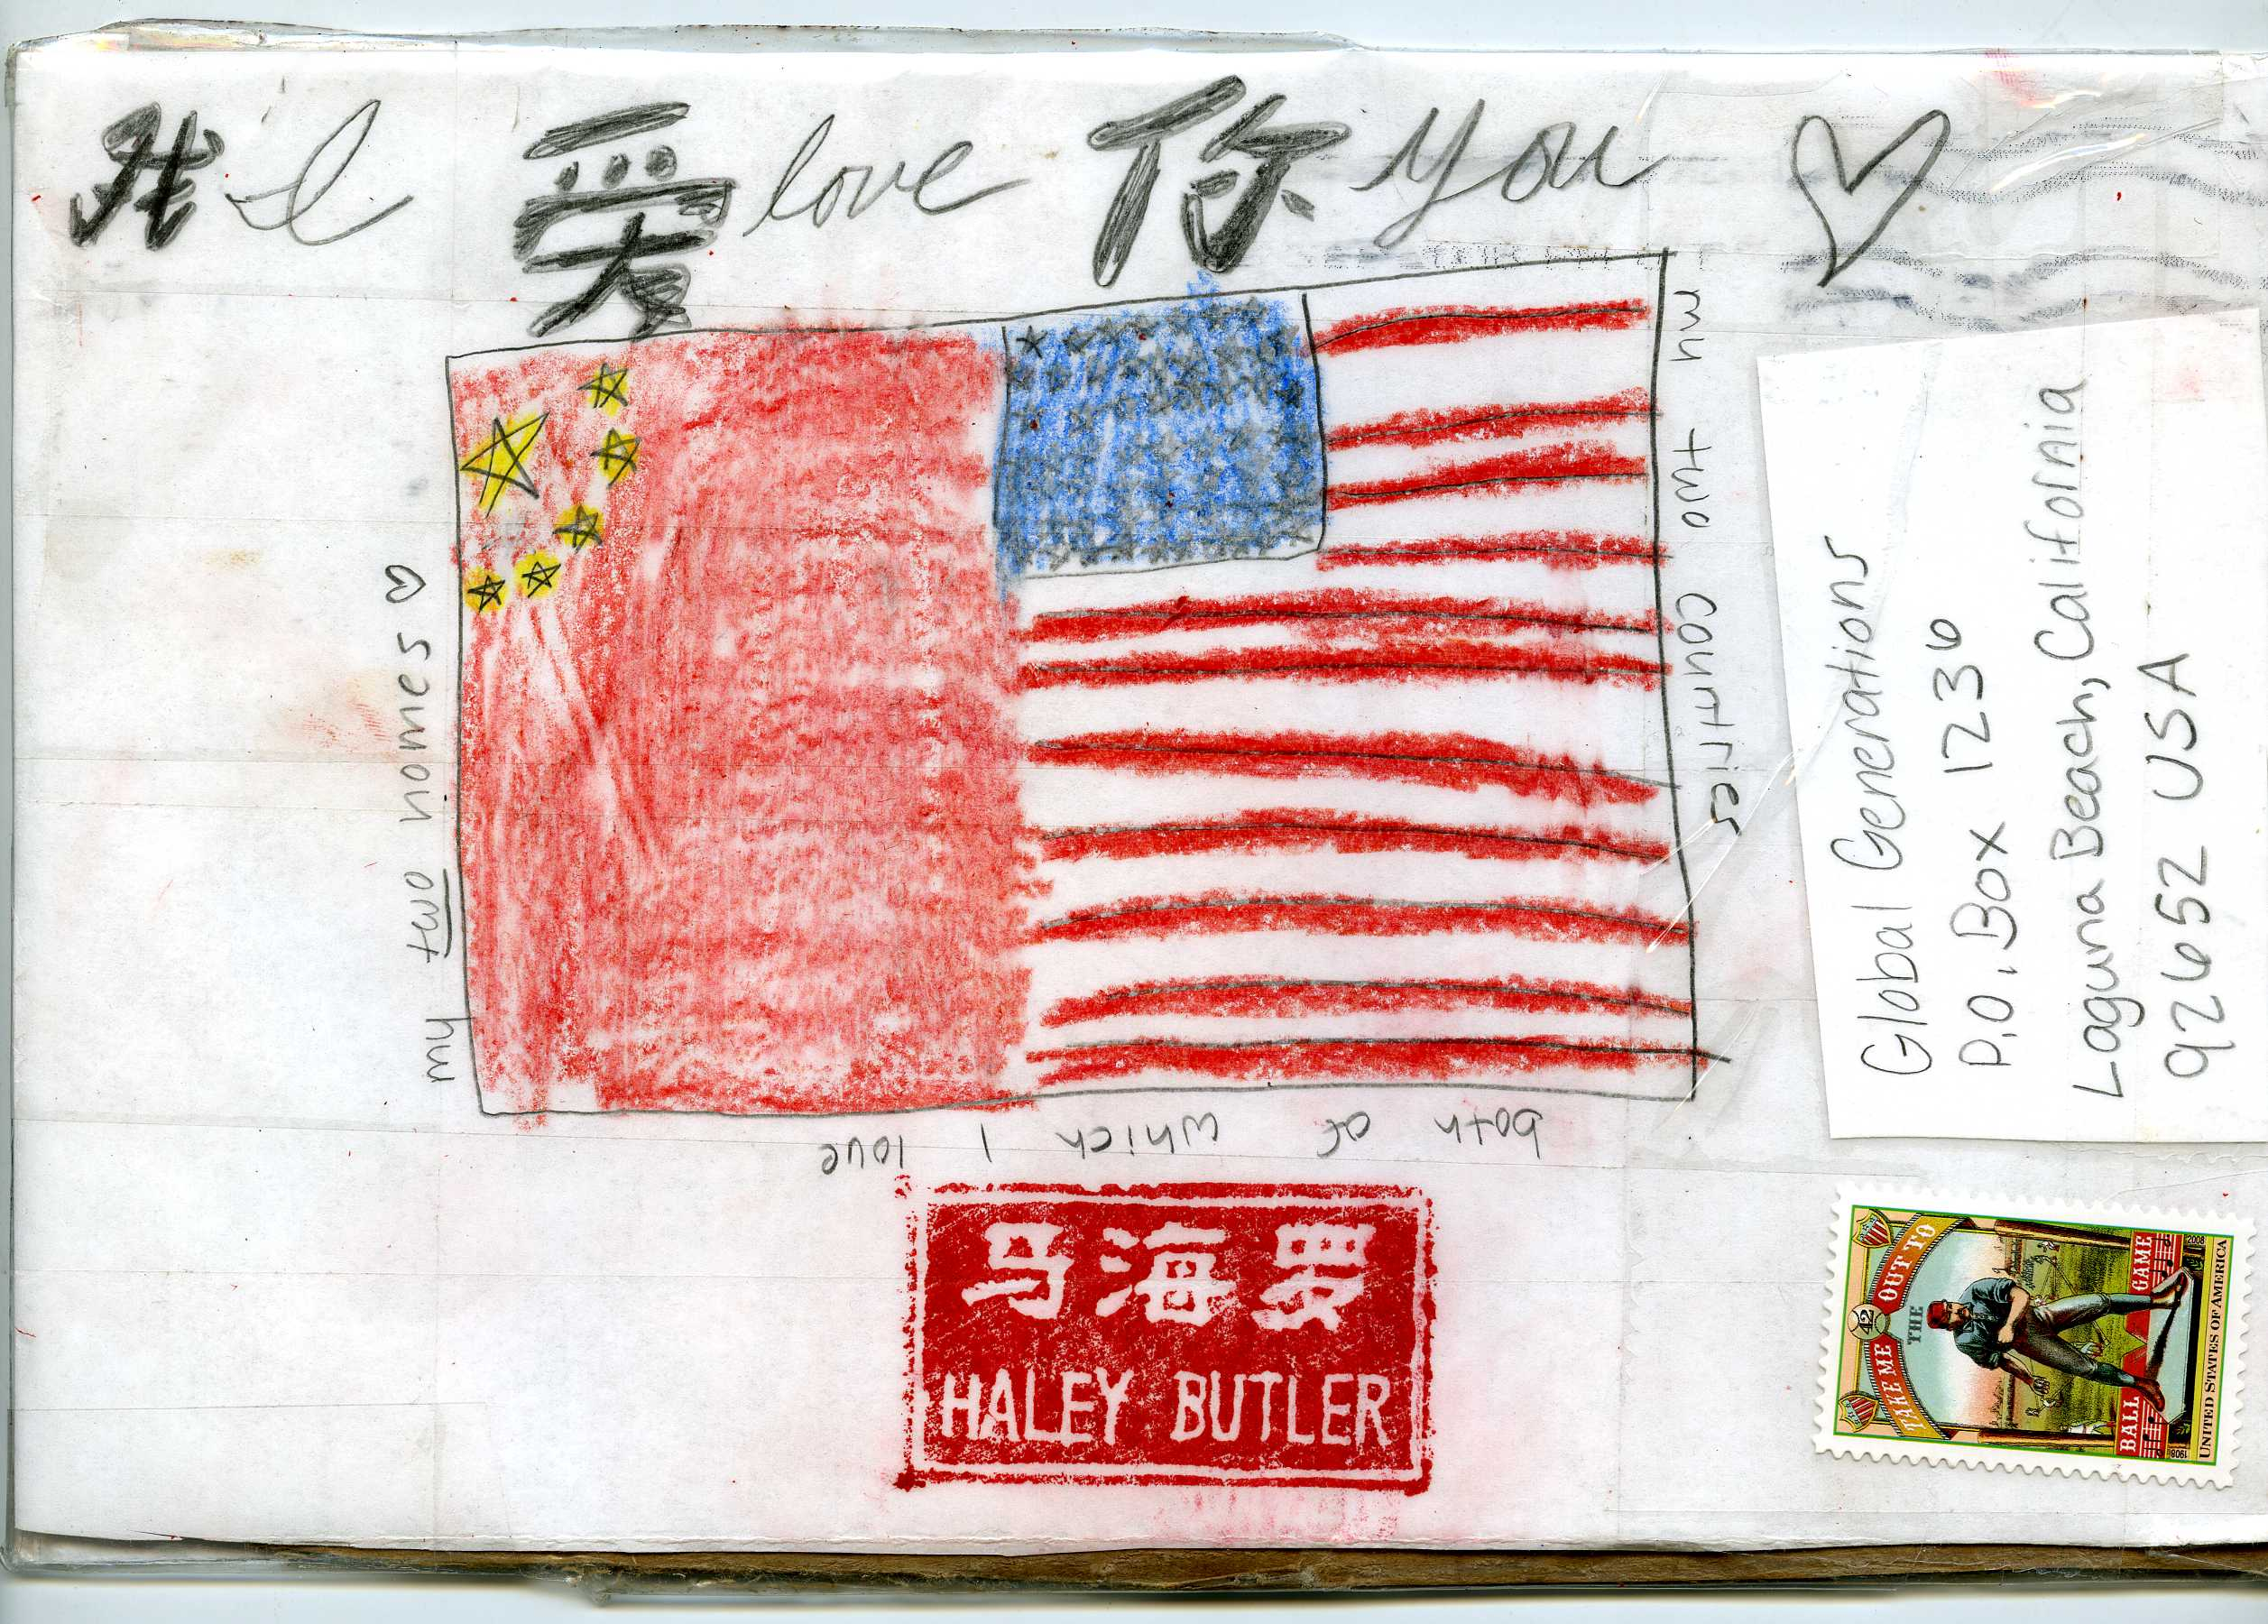 the-postcard-project-title-i-love-you-postcard-by-haley-butler-front-page